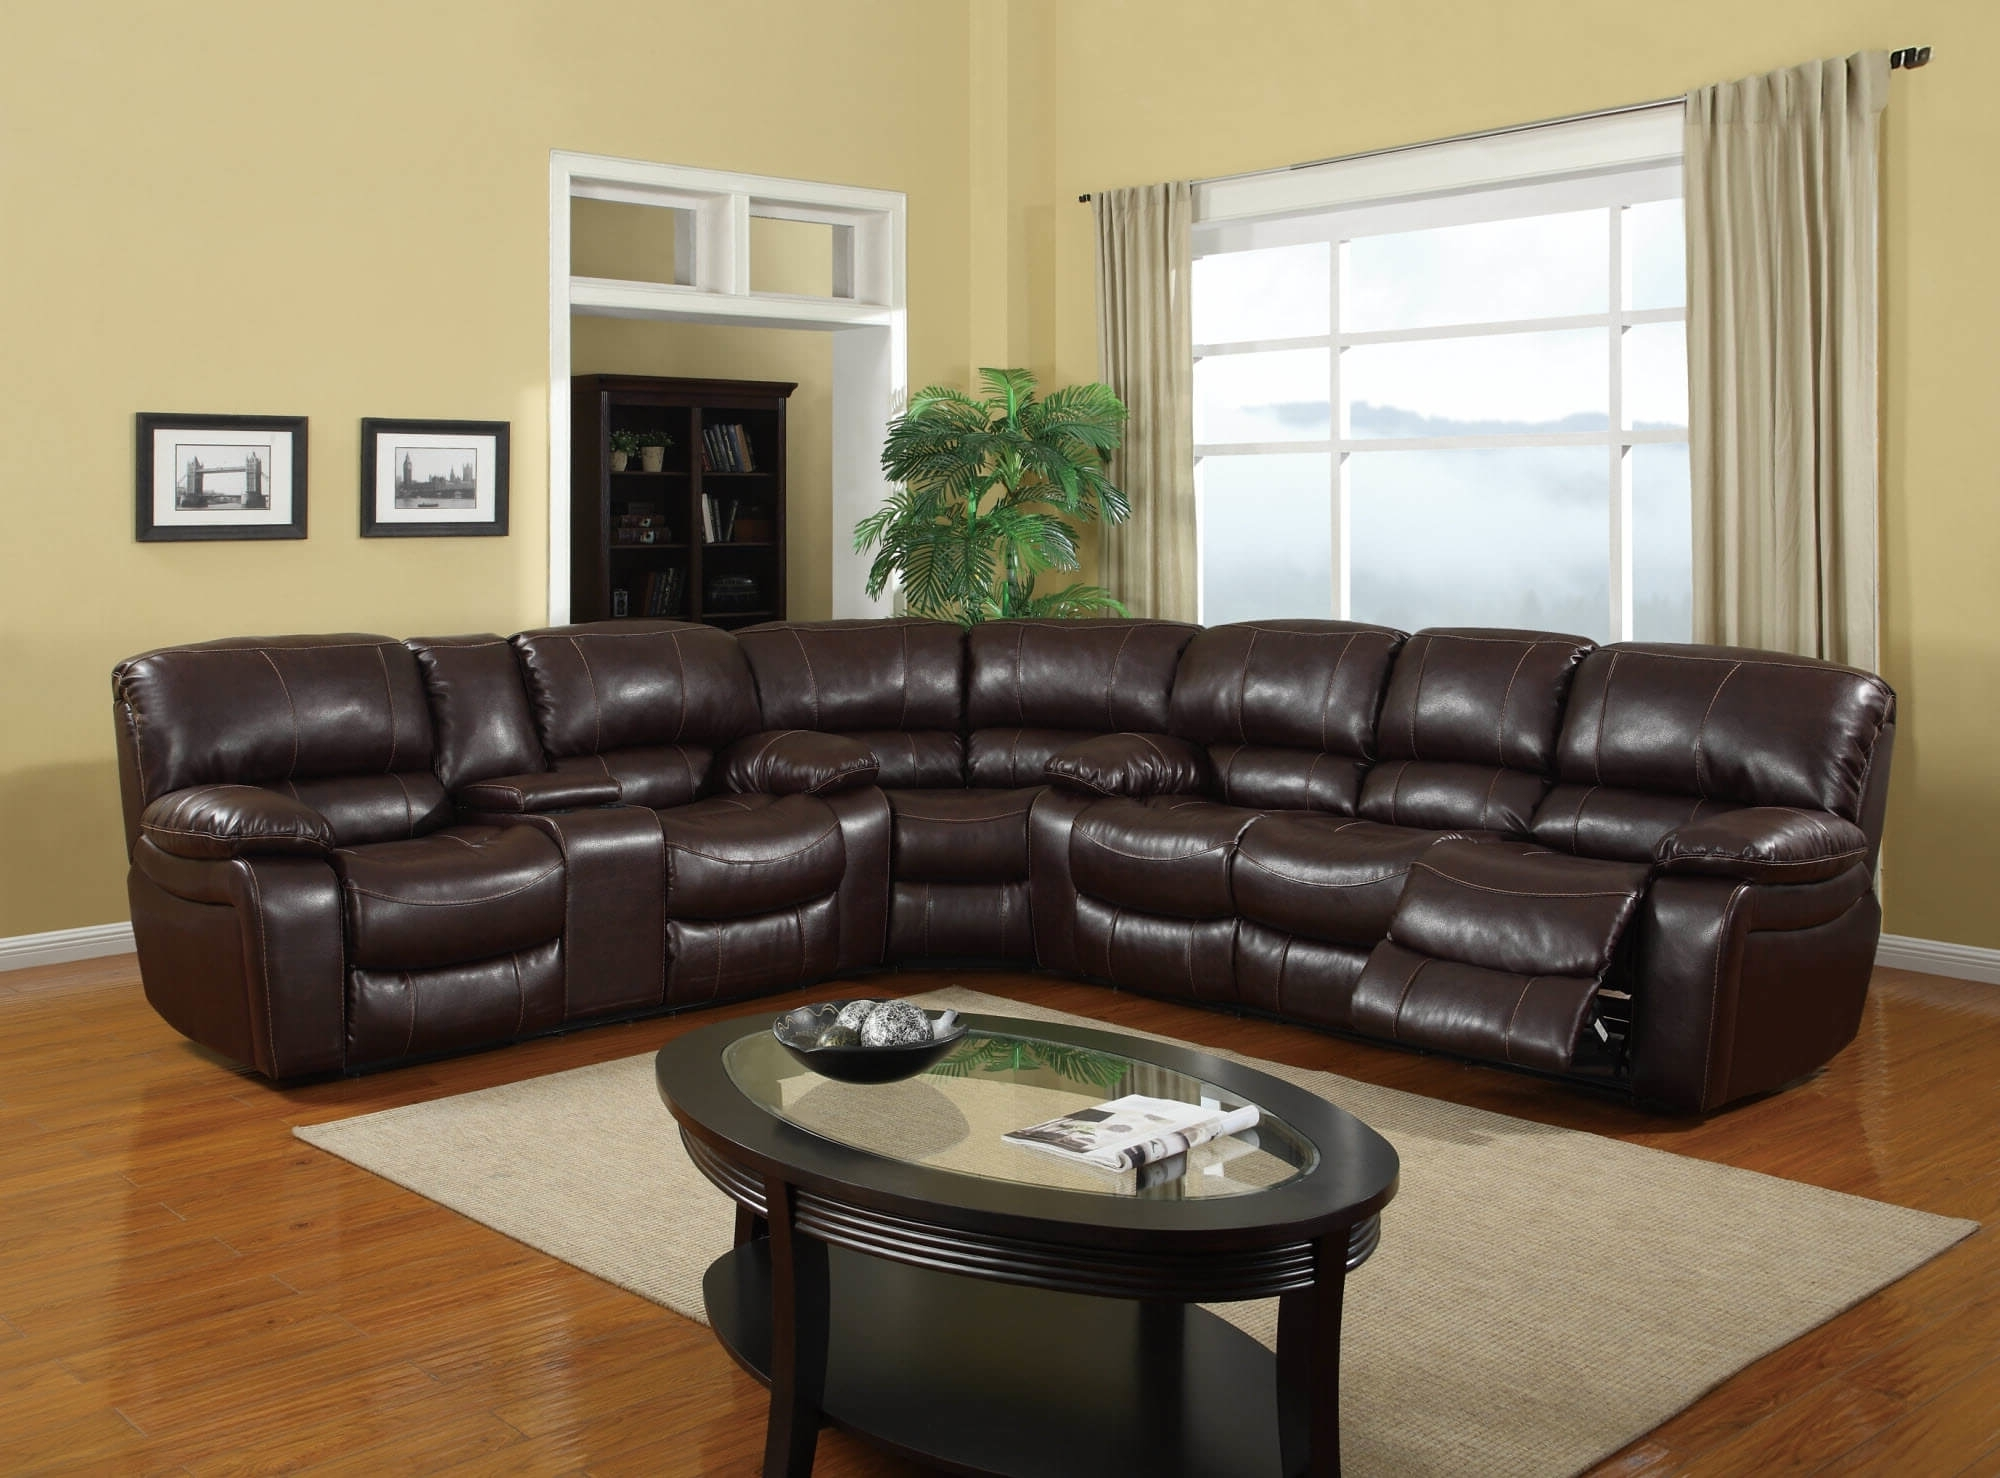 Lovely High Quality Sectional Sofa 30 For Sofa Room Ideas With Pertaining To Quality Sectional Sofa (Image 8 of 15)